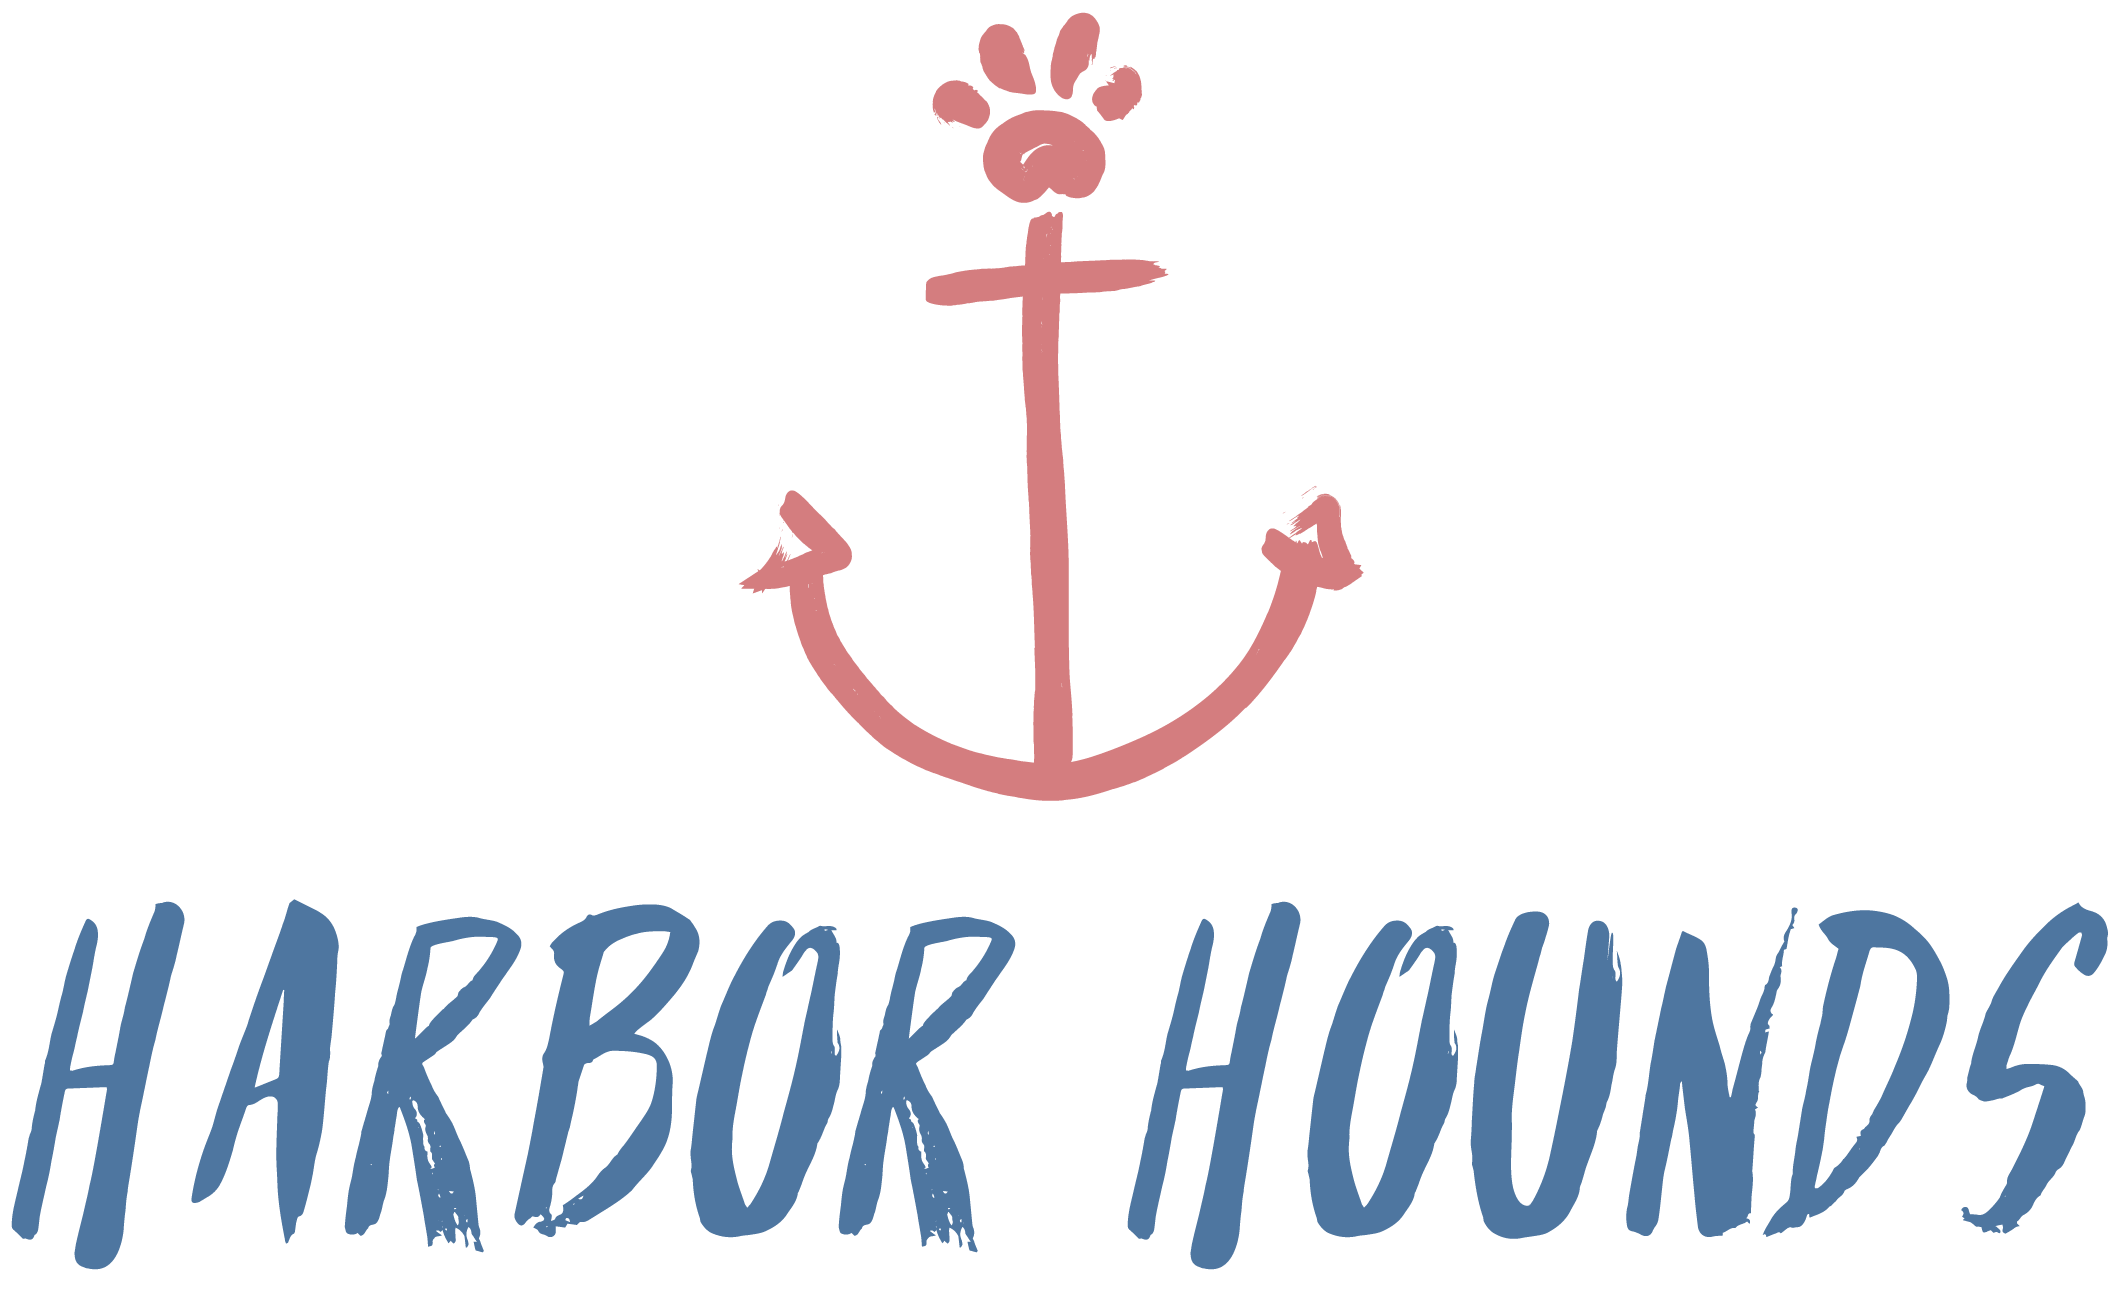 HarborHounds_Logo.png